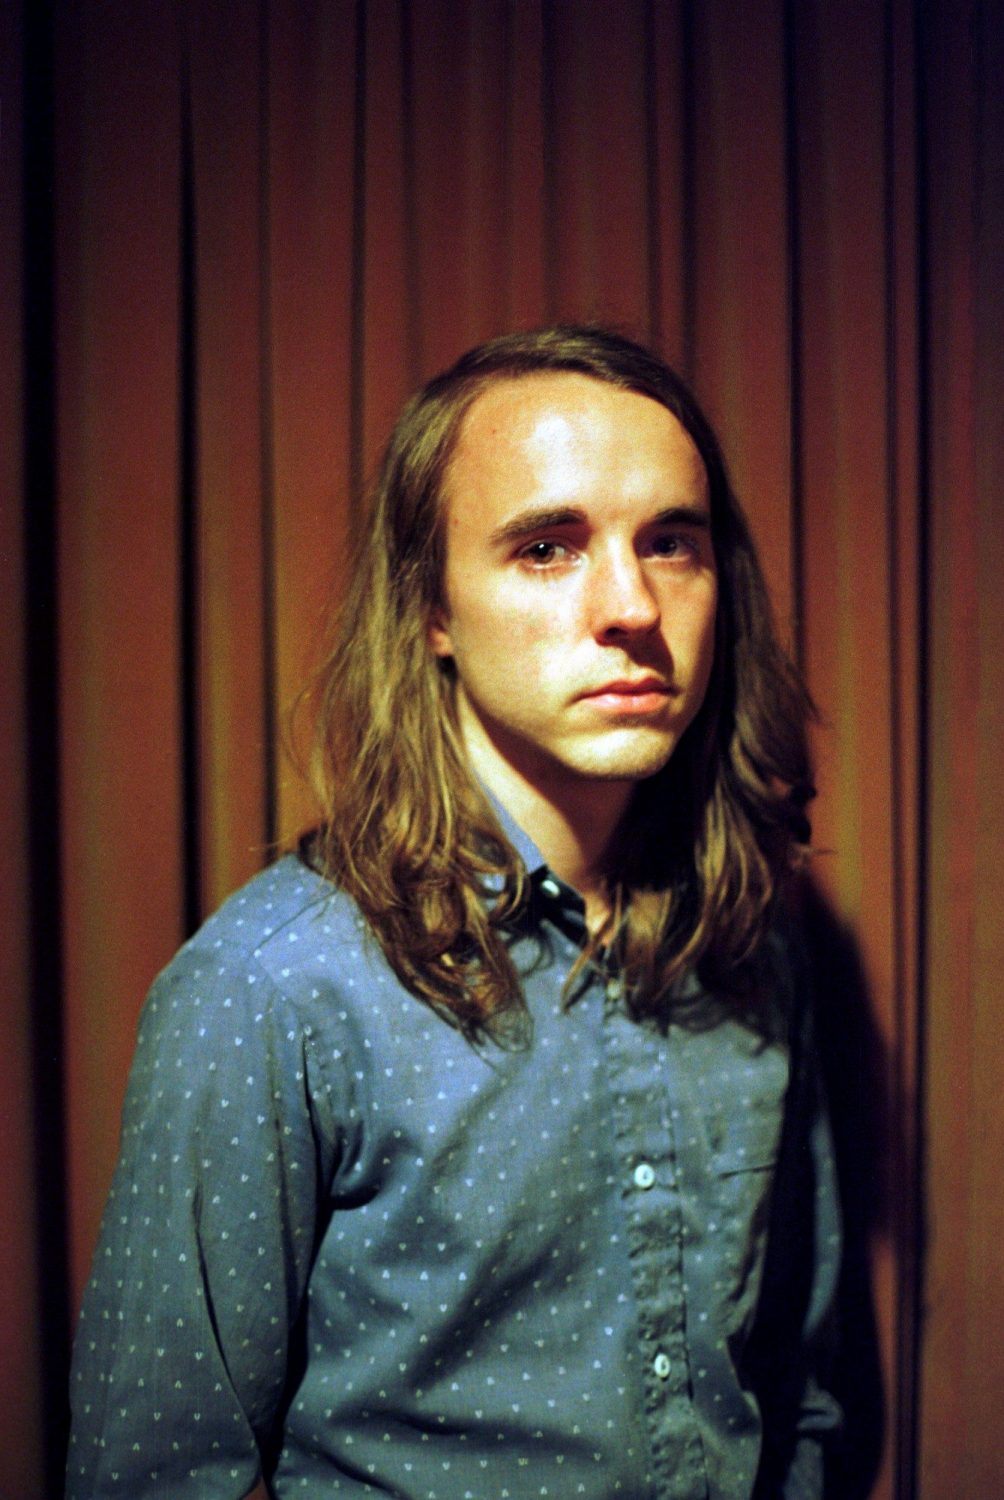 Andy Shauf on his sold-out Dec. 7 show at Rough Trade, his history with New York & more